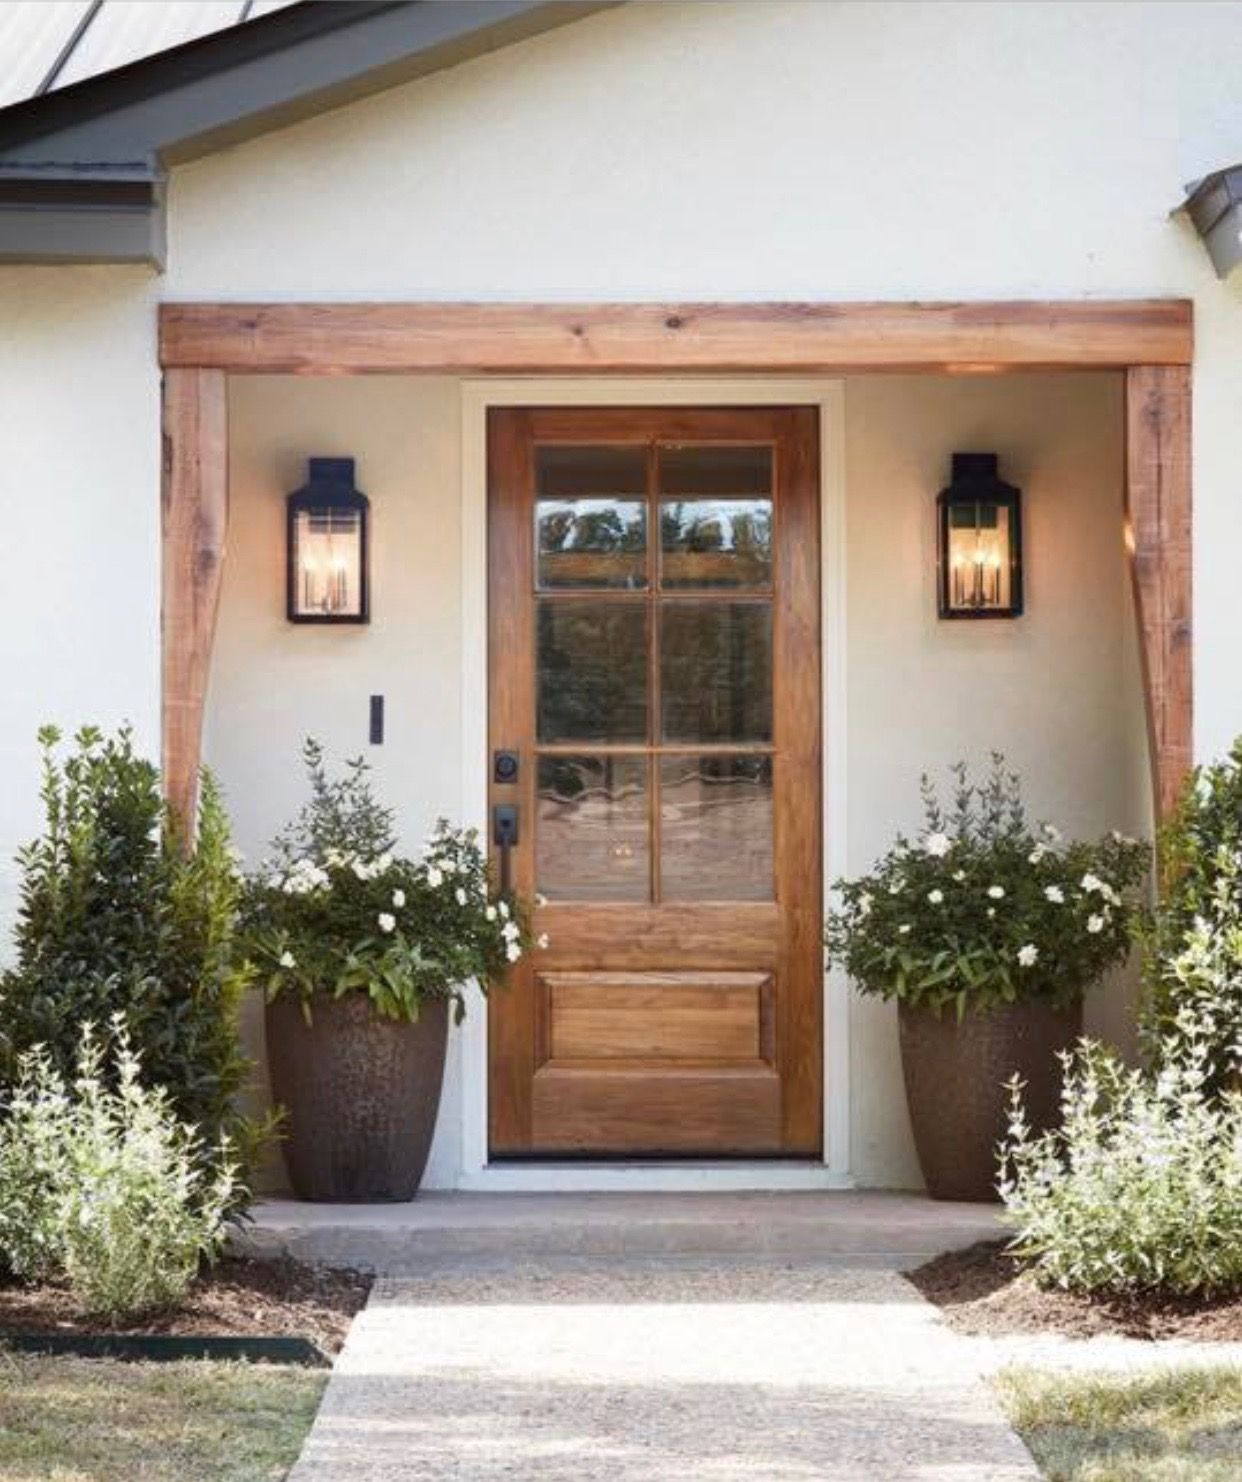 Front door entrance house decor porch entry main also pin by rory evert on outside ideas in pinterest rh